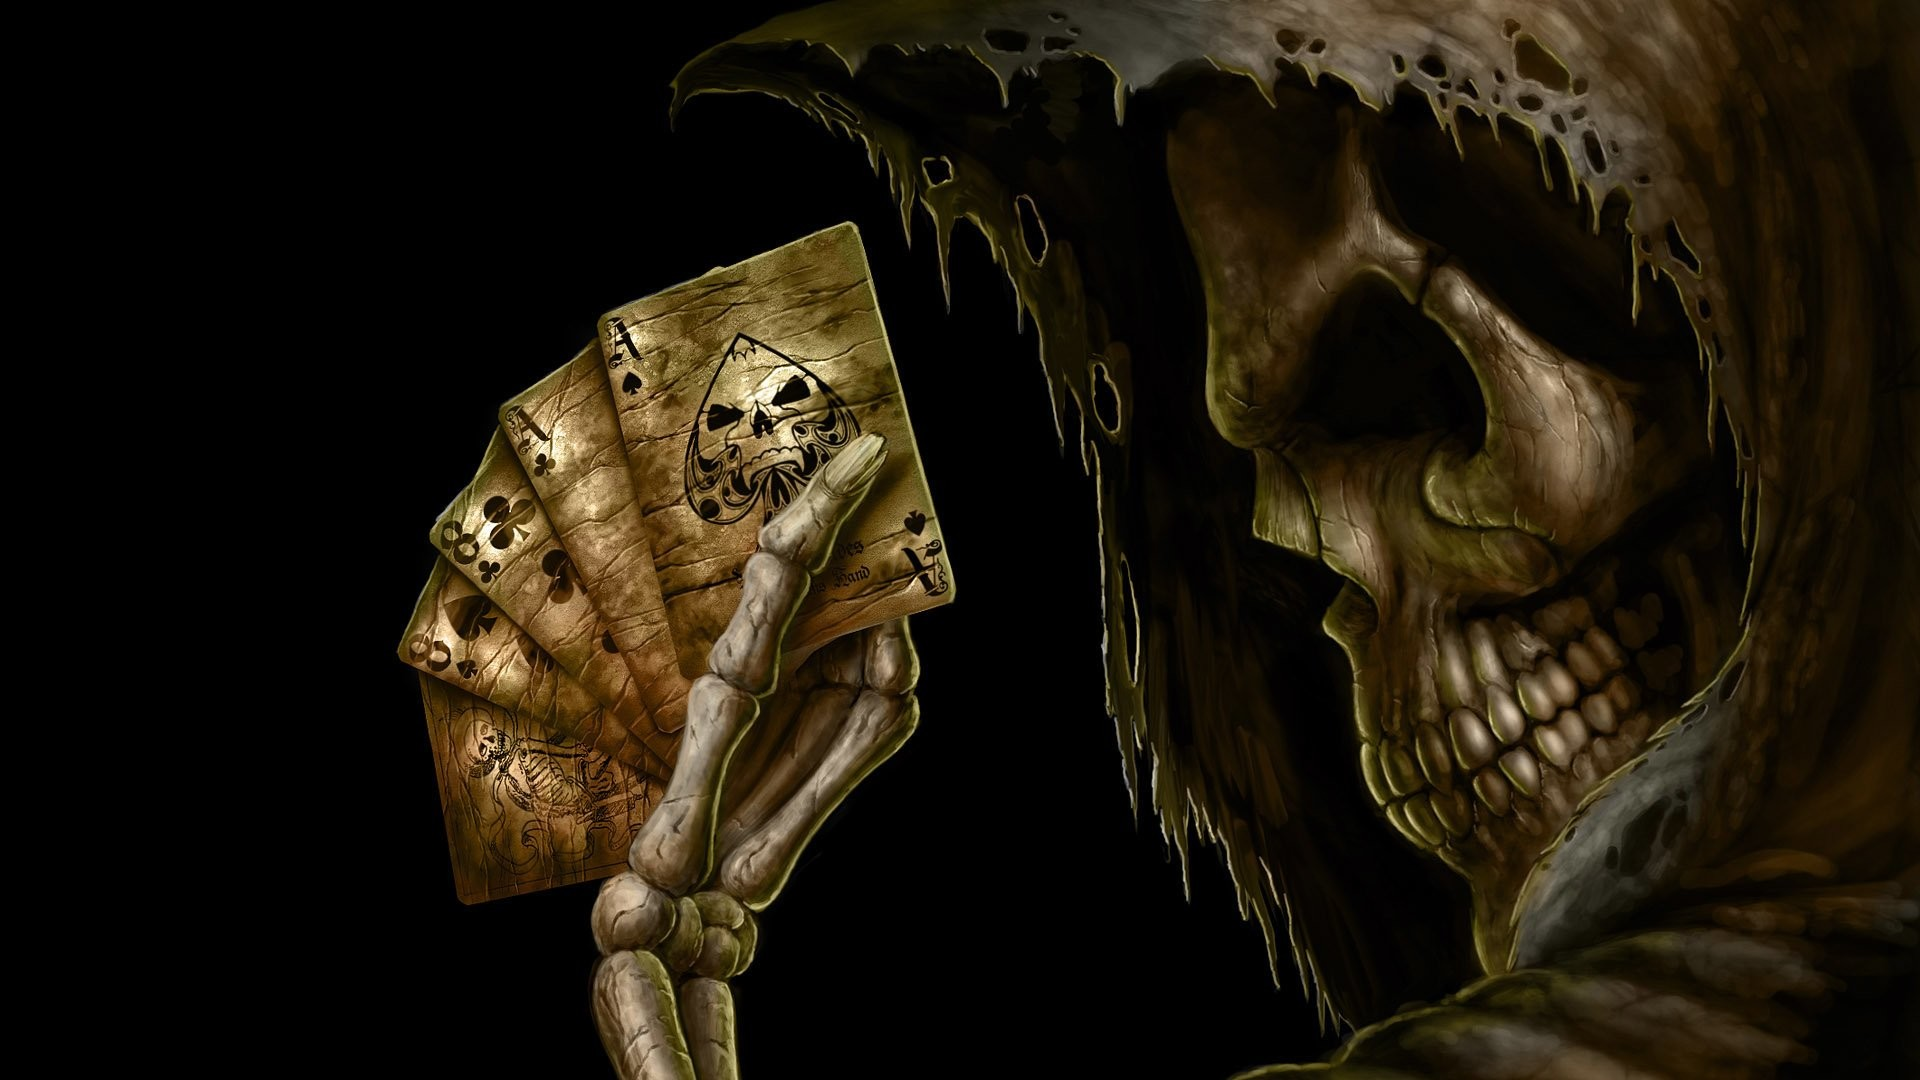 Res: 1920x1080, Dark Death Grim Reaper · HD Wallpaper | Background Image ID:118479